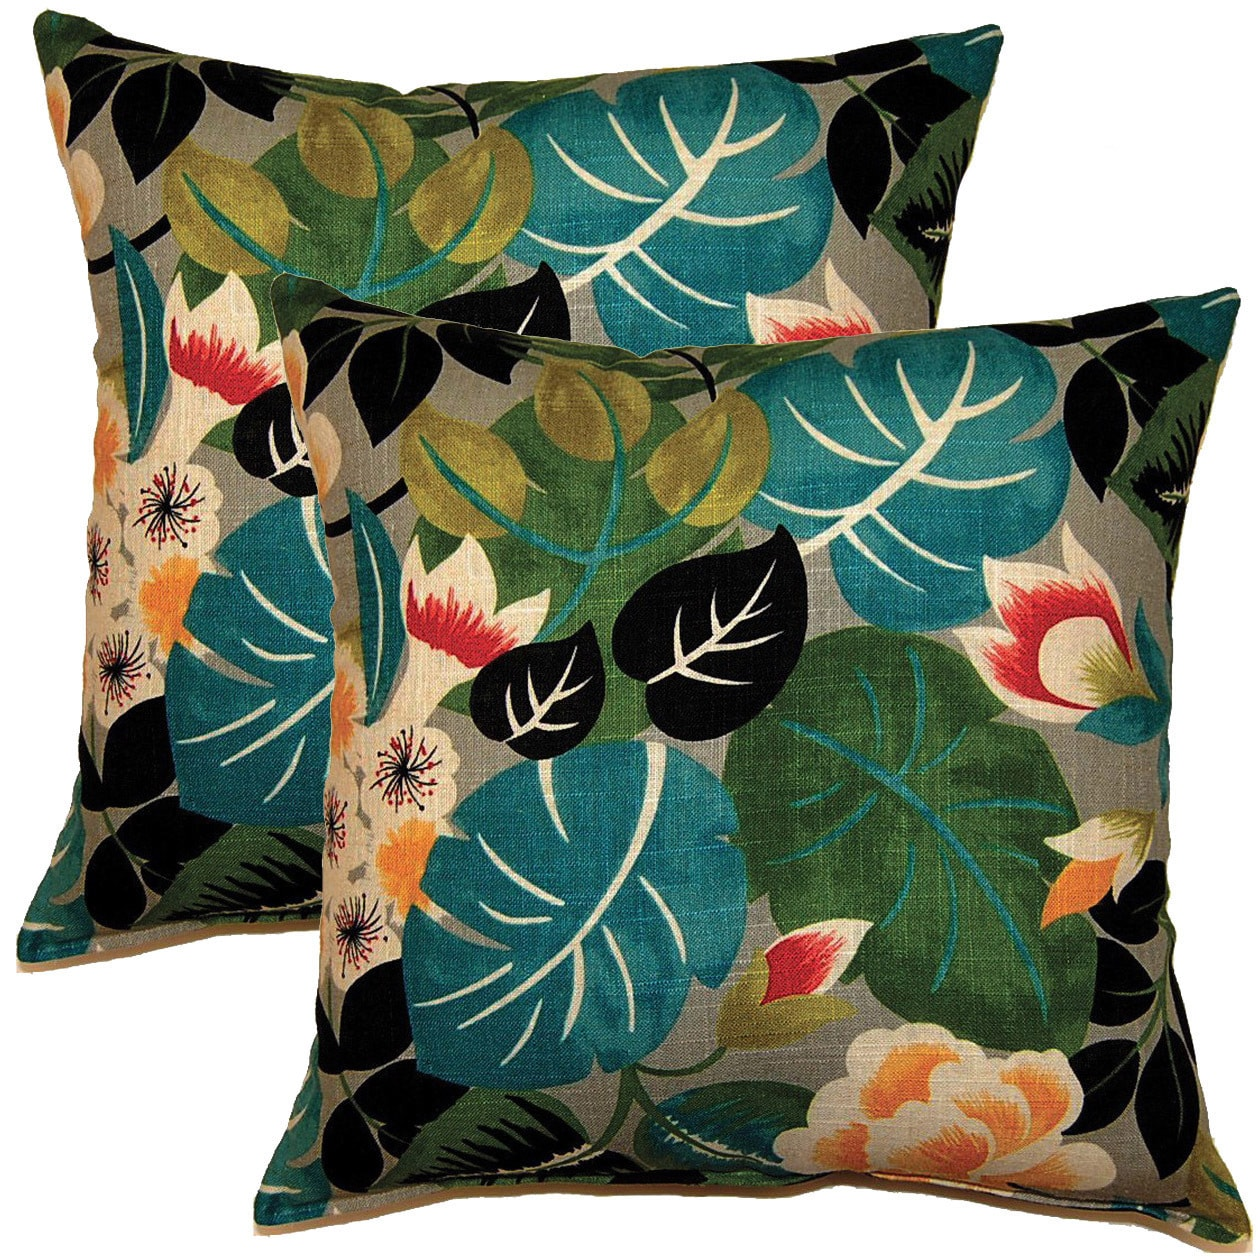 Creative Isla Sterling 17-inch Throw Pillows (Set of 2) (...